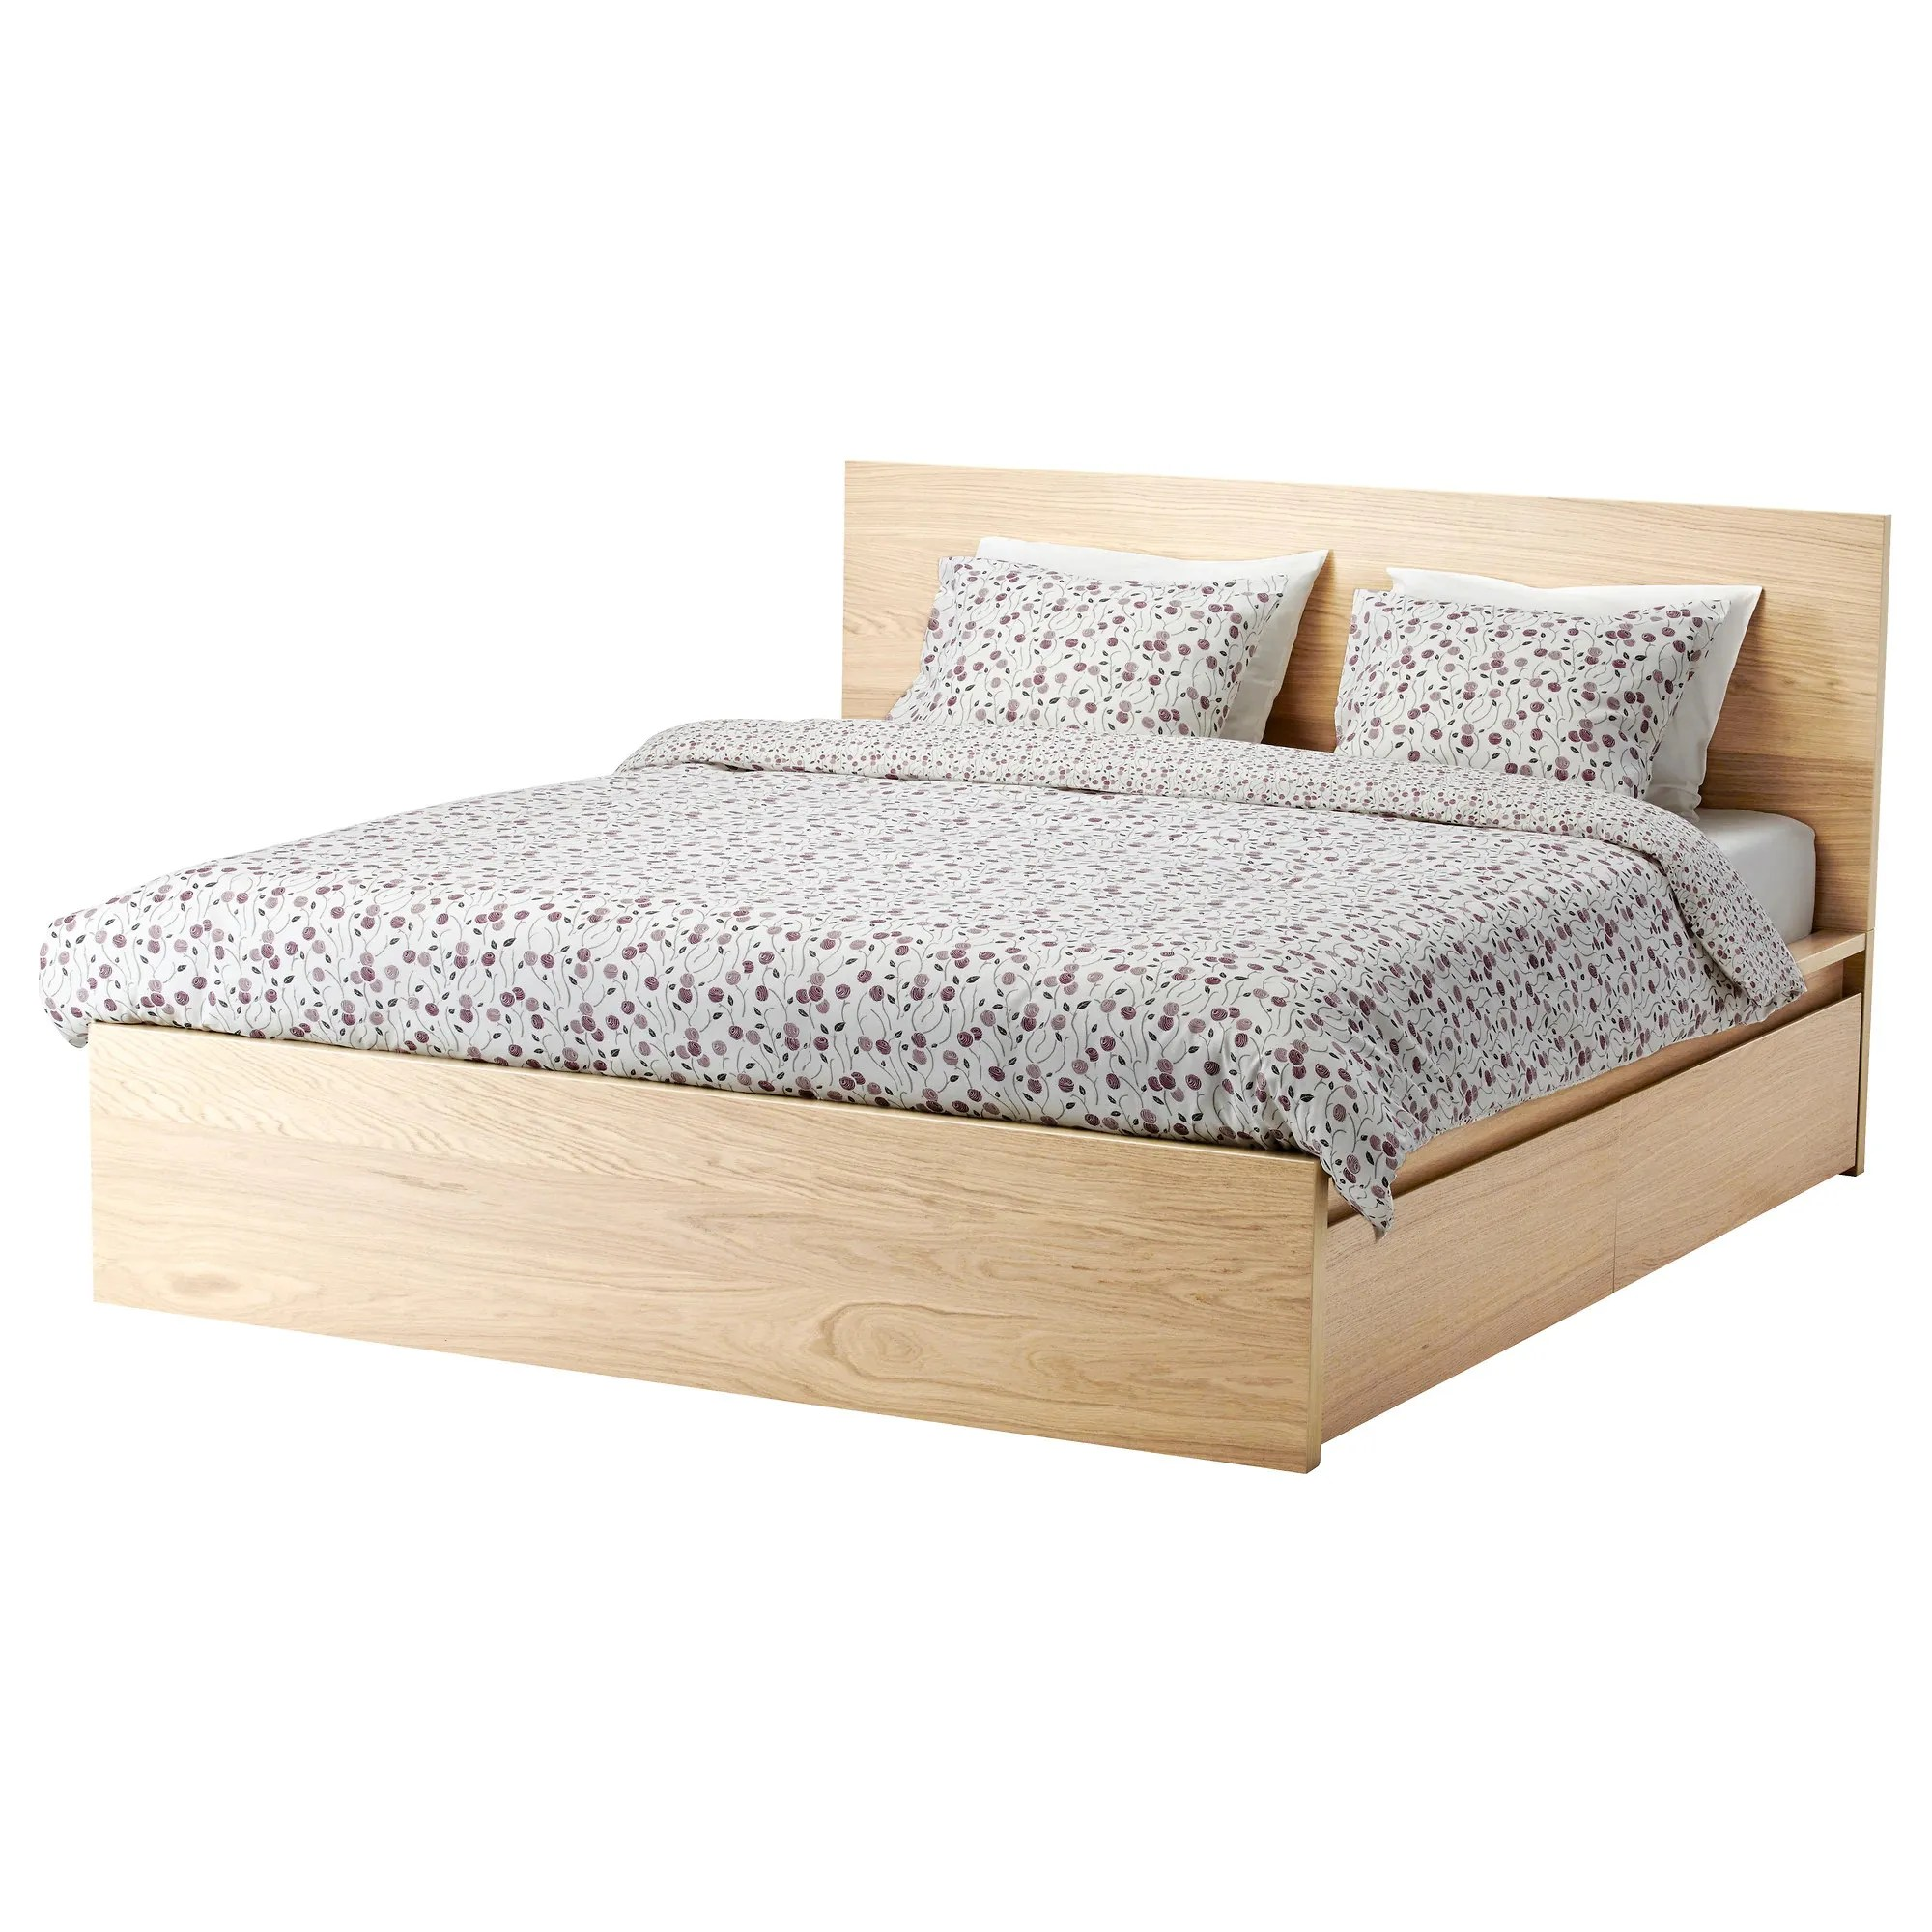 King Single Bed With Drawers The Best Beds For Small Rooms Will Totally Surprise You